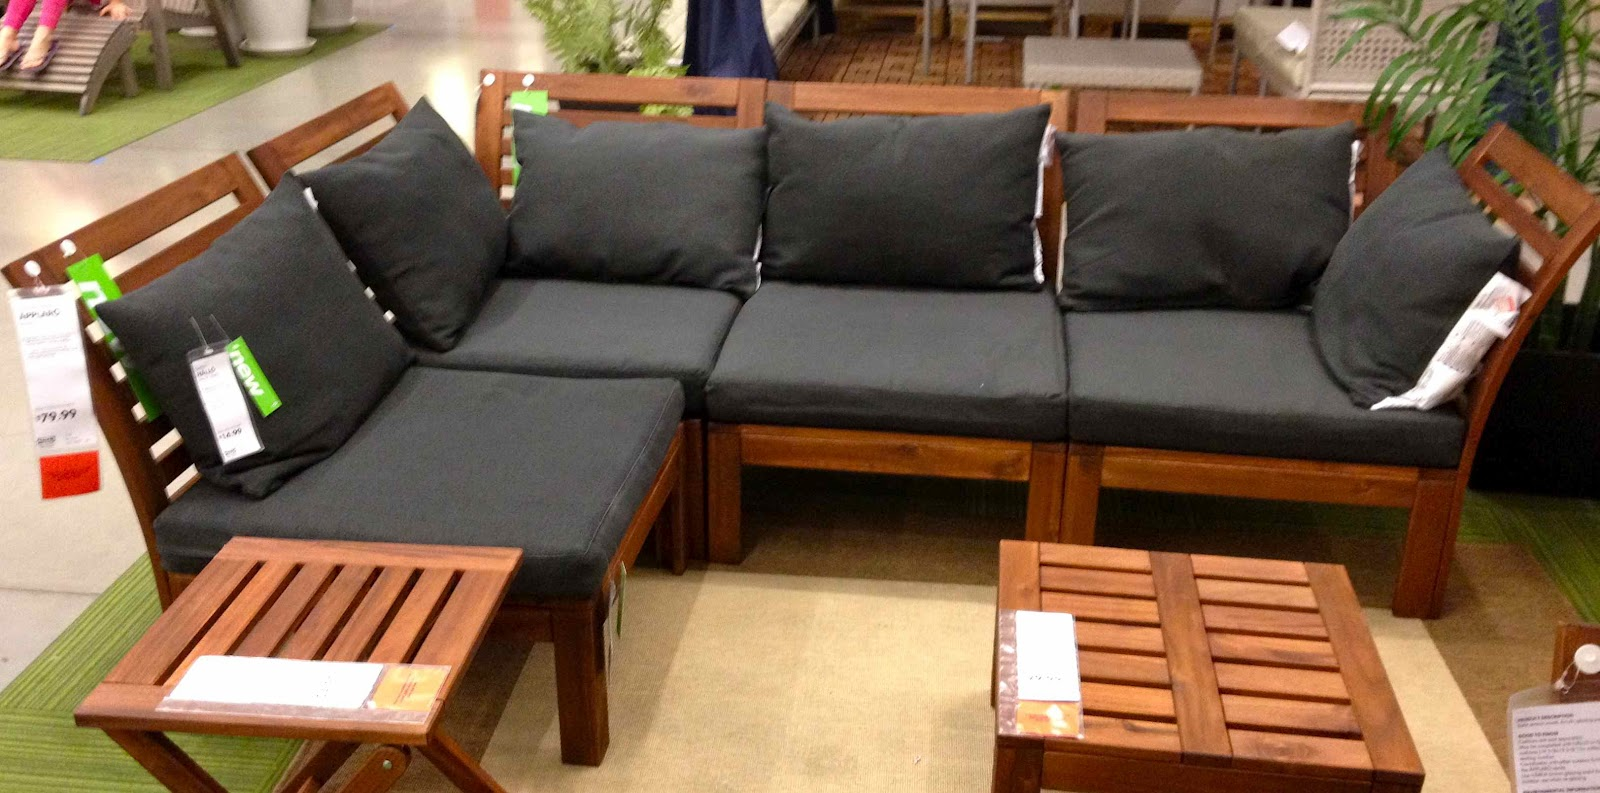 ikea outdoor patio furniture. ikea applaro sectional ikea outdoor patio furniture s